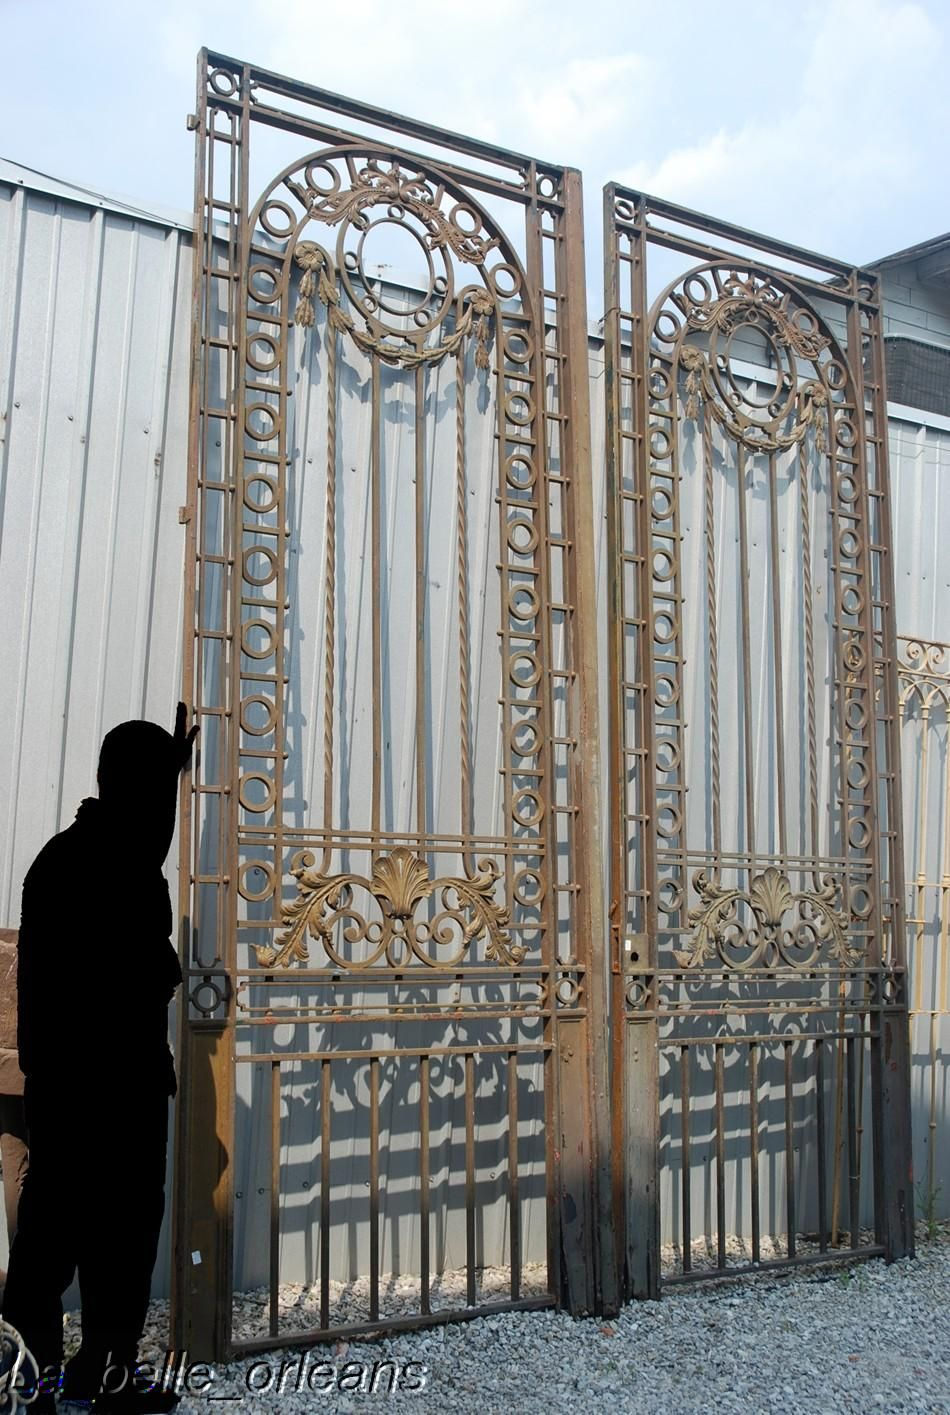 MONUMENTAL 19THc FRENCH WROUGHT IRON MANSION GATES For Sale | Antiques.com  | Classifieds - MONUMENTAL 19THc FRENCH WROUGHT IRON MANSION GATES For Sale